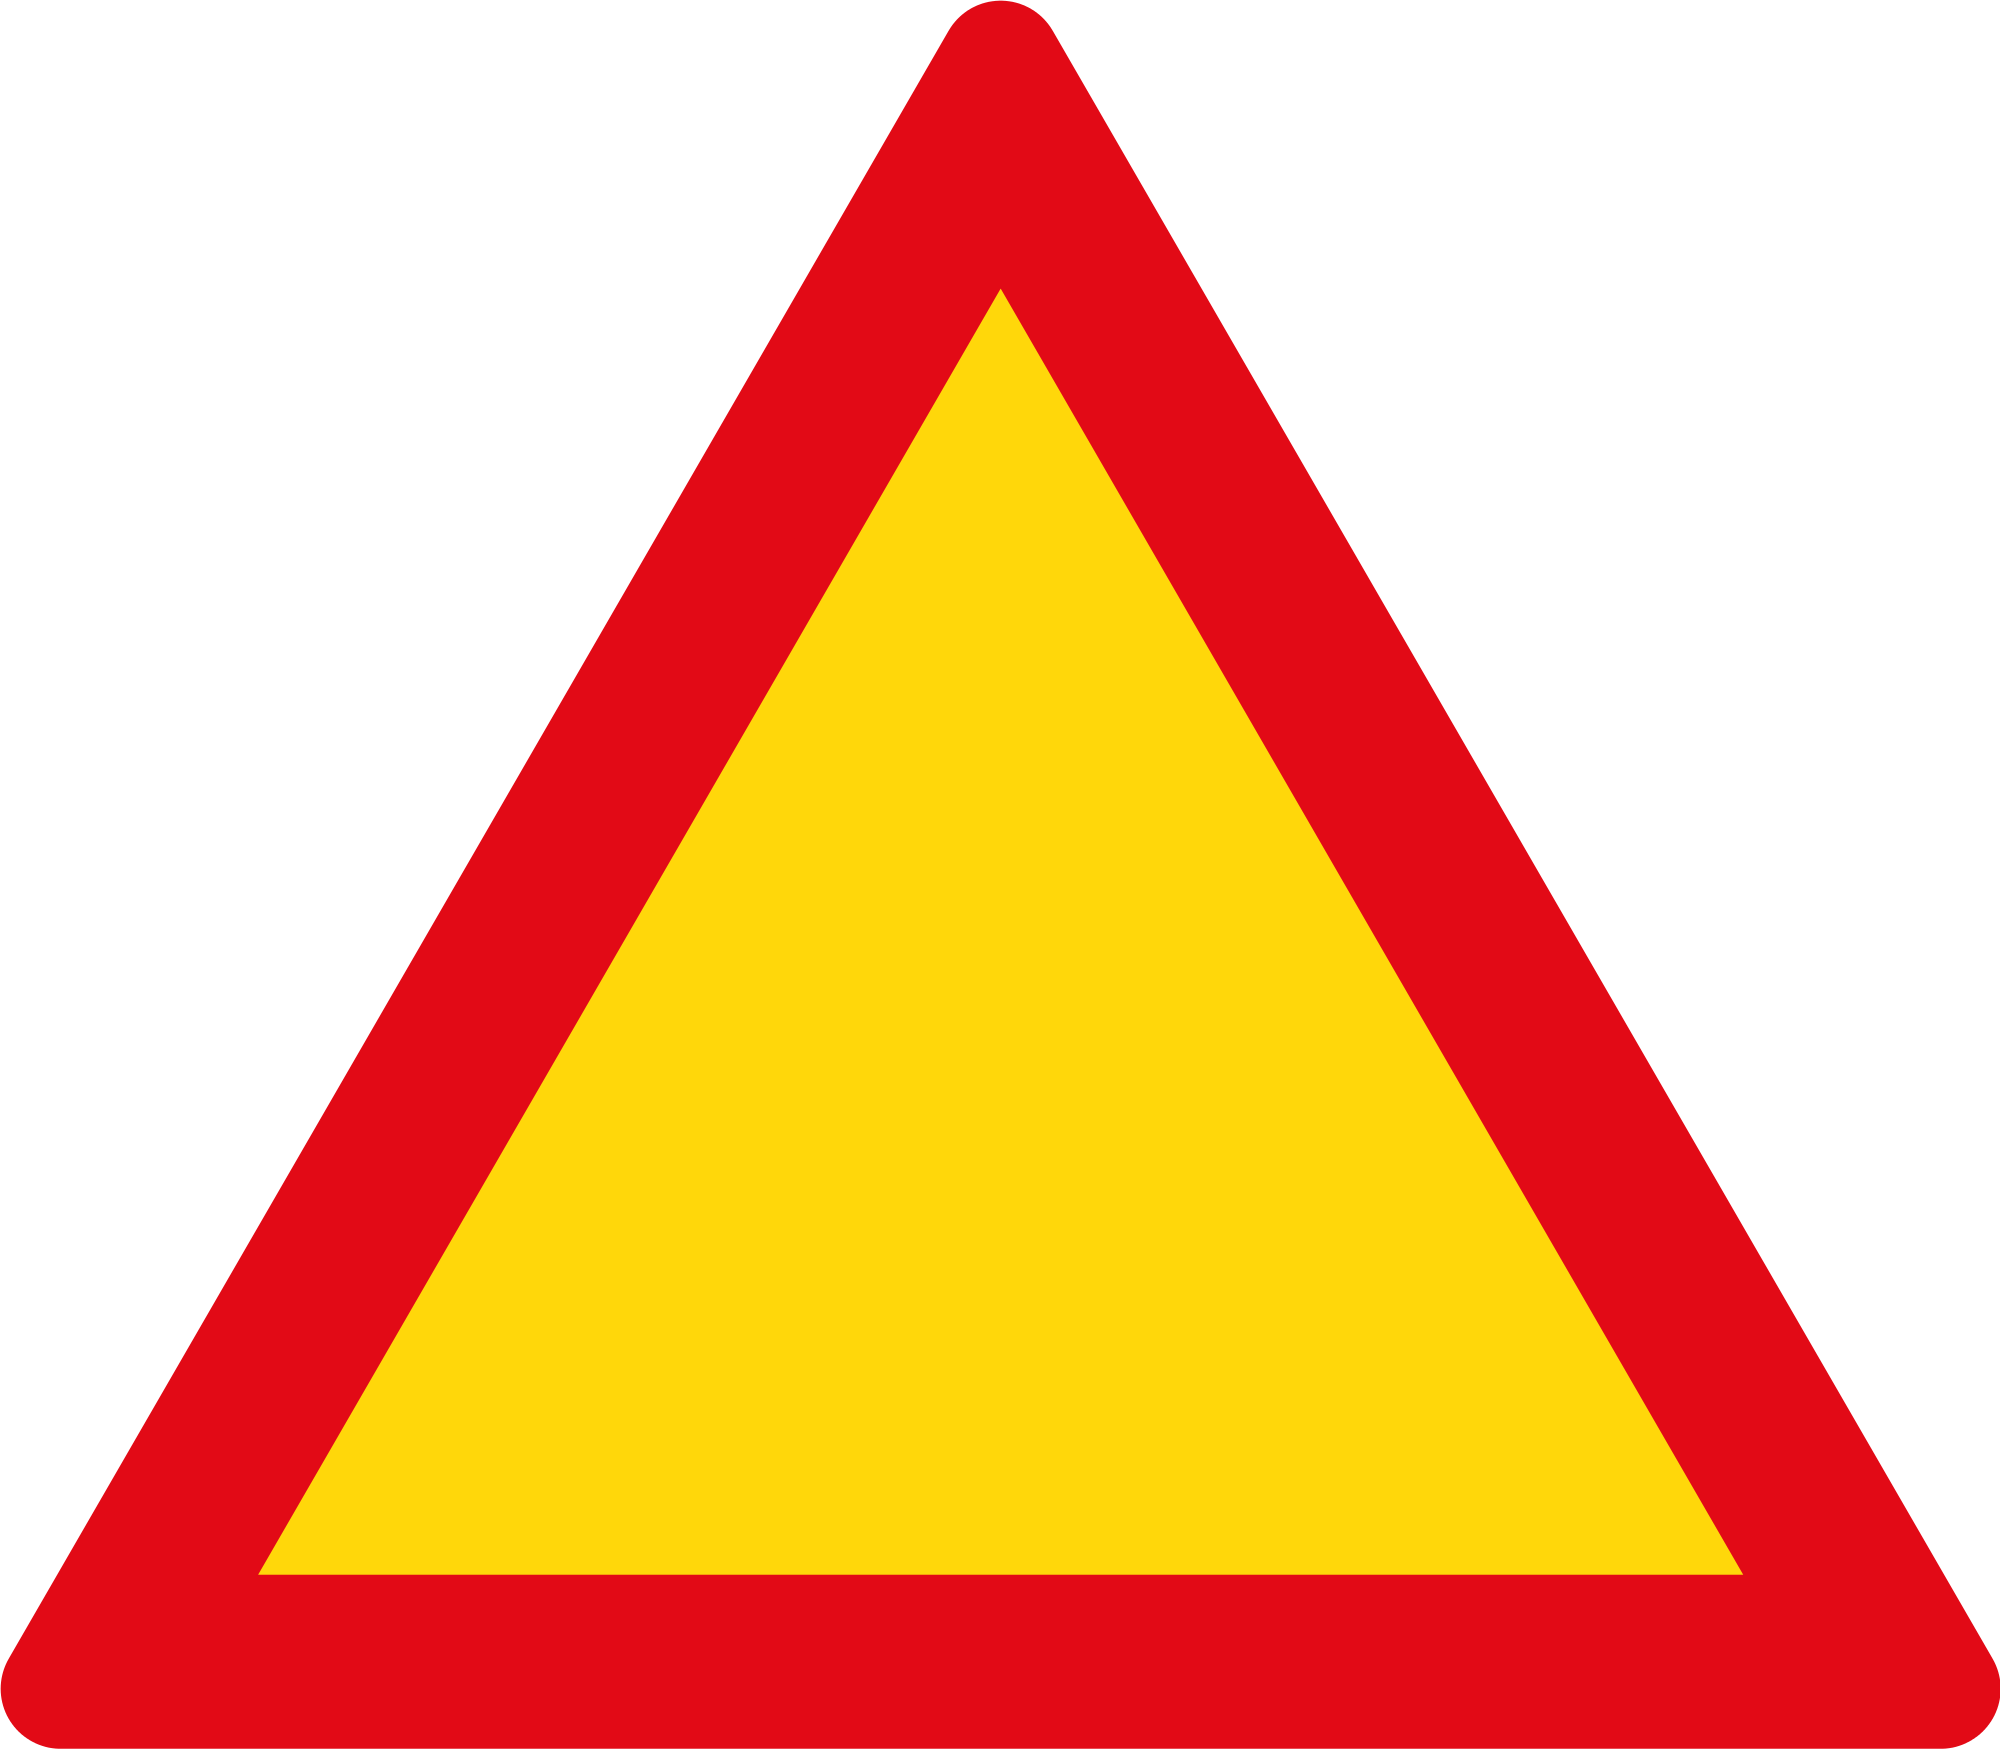 Red warning sign png. File triangle and yellow